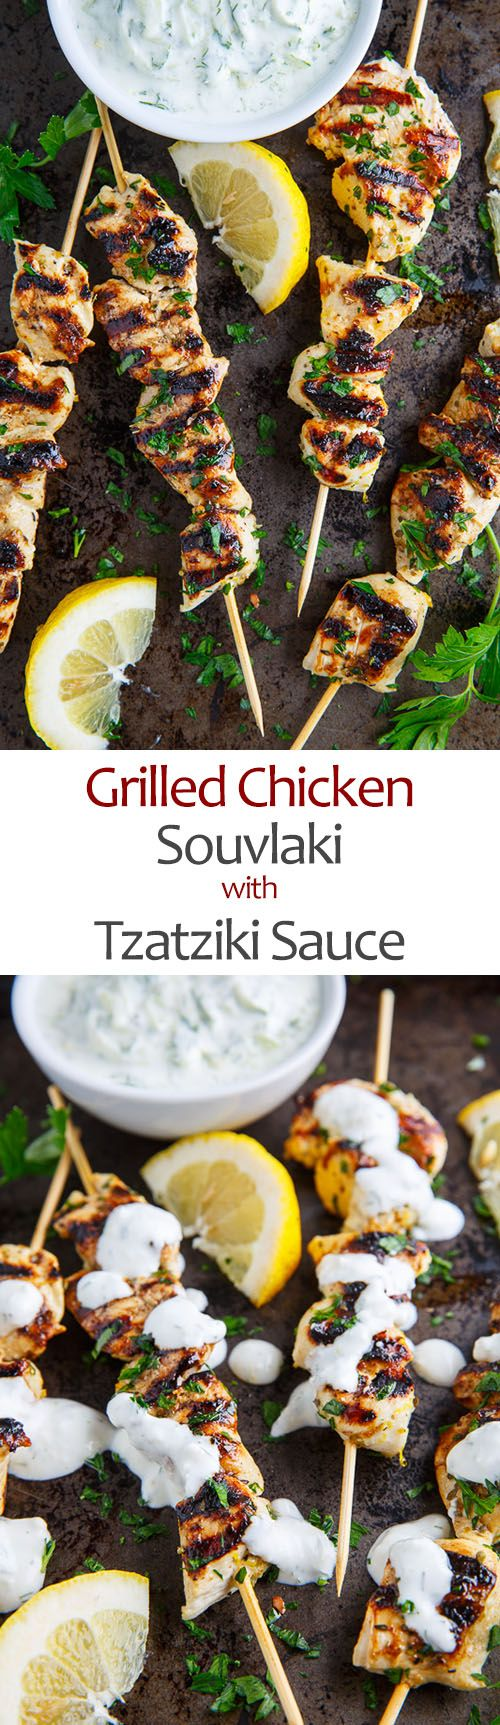 "GRILLED CHICKEN SOUVLAKI - ""A tasty Mediterranean lemon, garlic and oregano skewered grilled chicken that is perfect in pitas, in salads or right off the stick."""